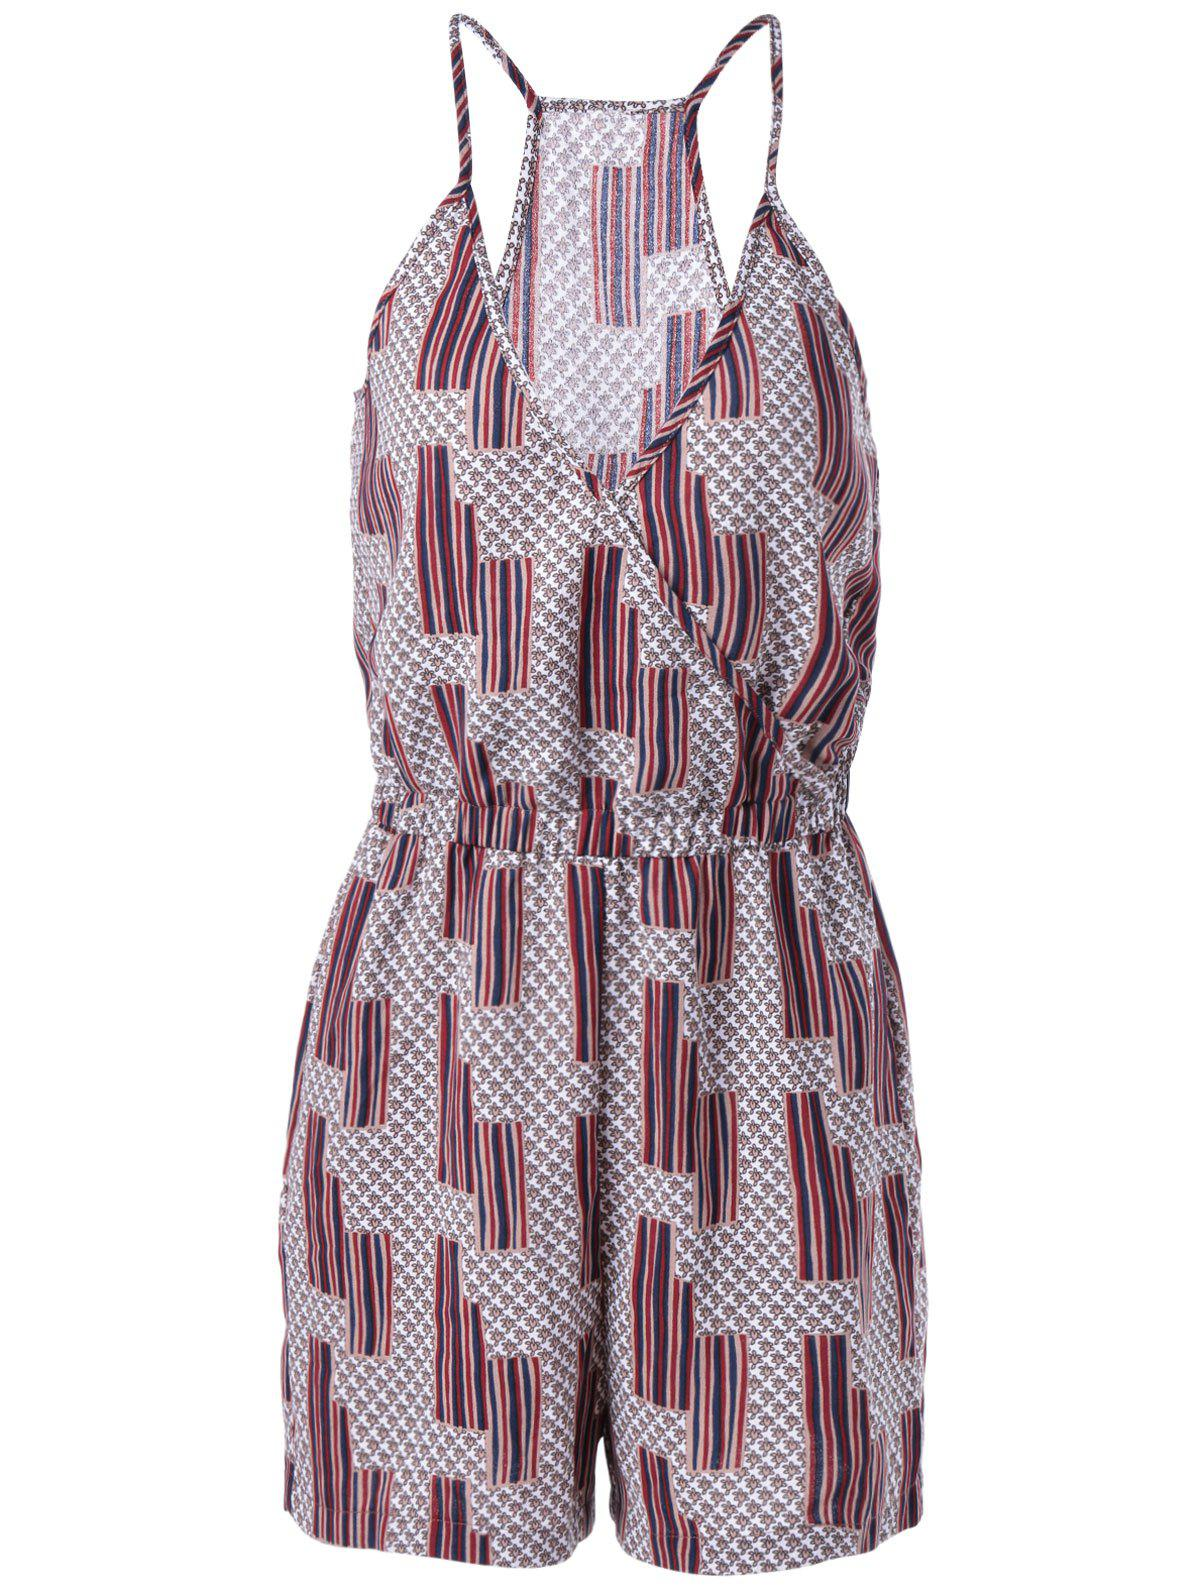 Ethnic Style Women's Loose-Fitting Spaghetti Strap Geometric Print Romper - COLORMIX L